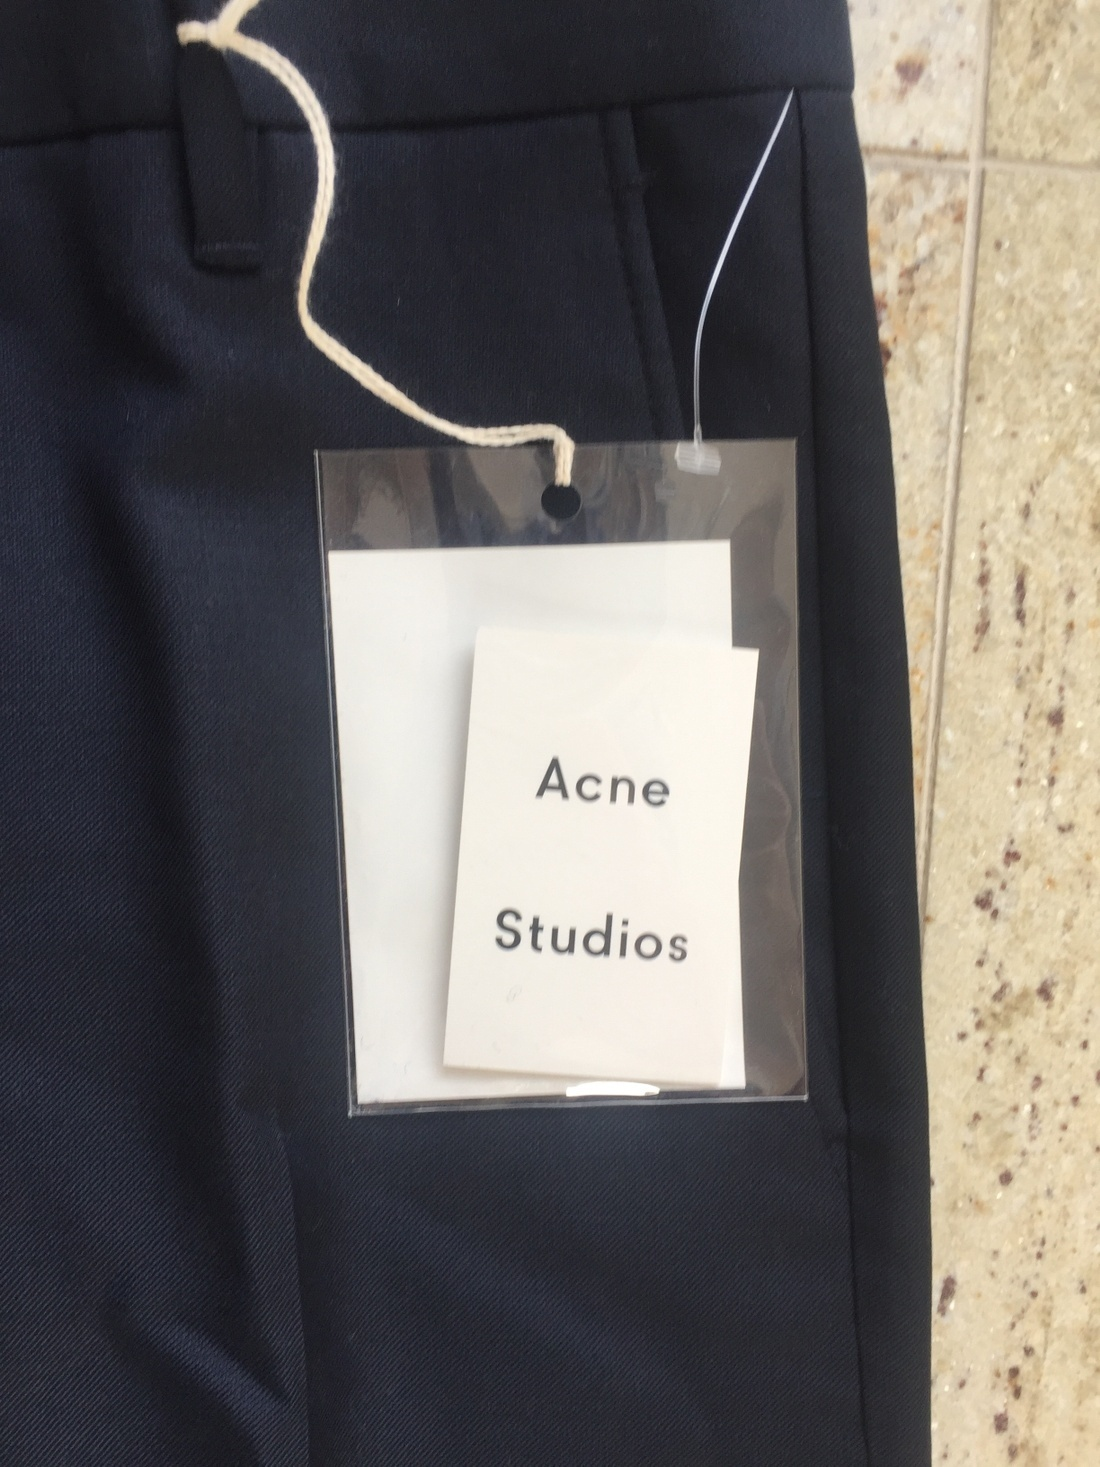 acne studios drifter navy slacks size 30 casual pants for sale grailed. Black Bedroom Furniture Sets. Home Design Ideas